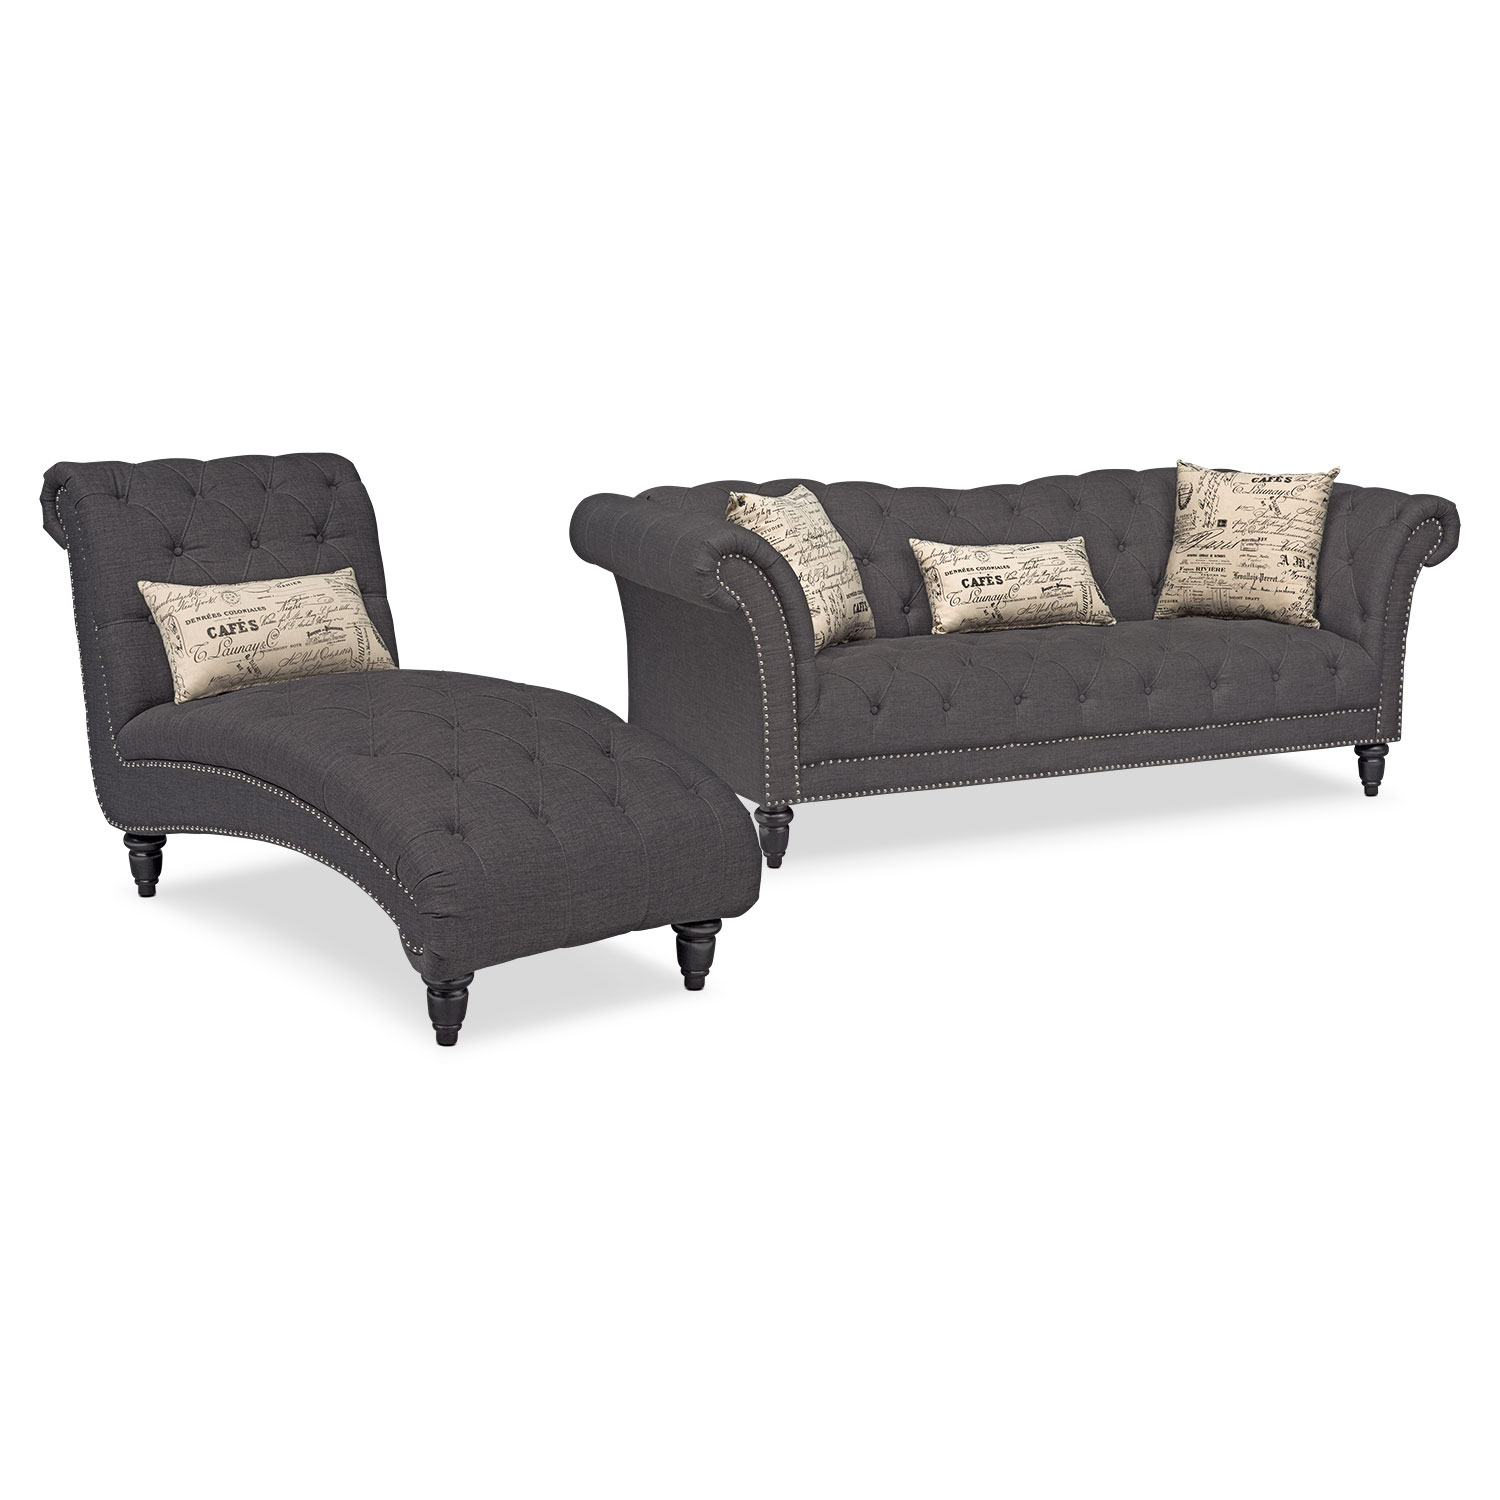 Marisol Sofa And Chaise Set Charcoal